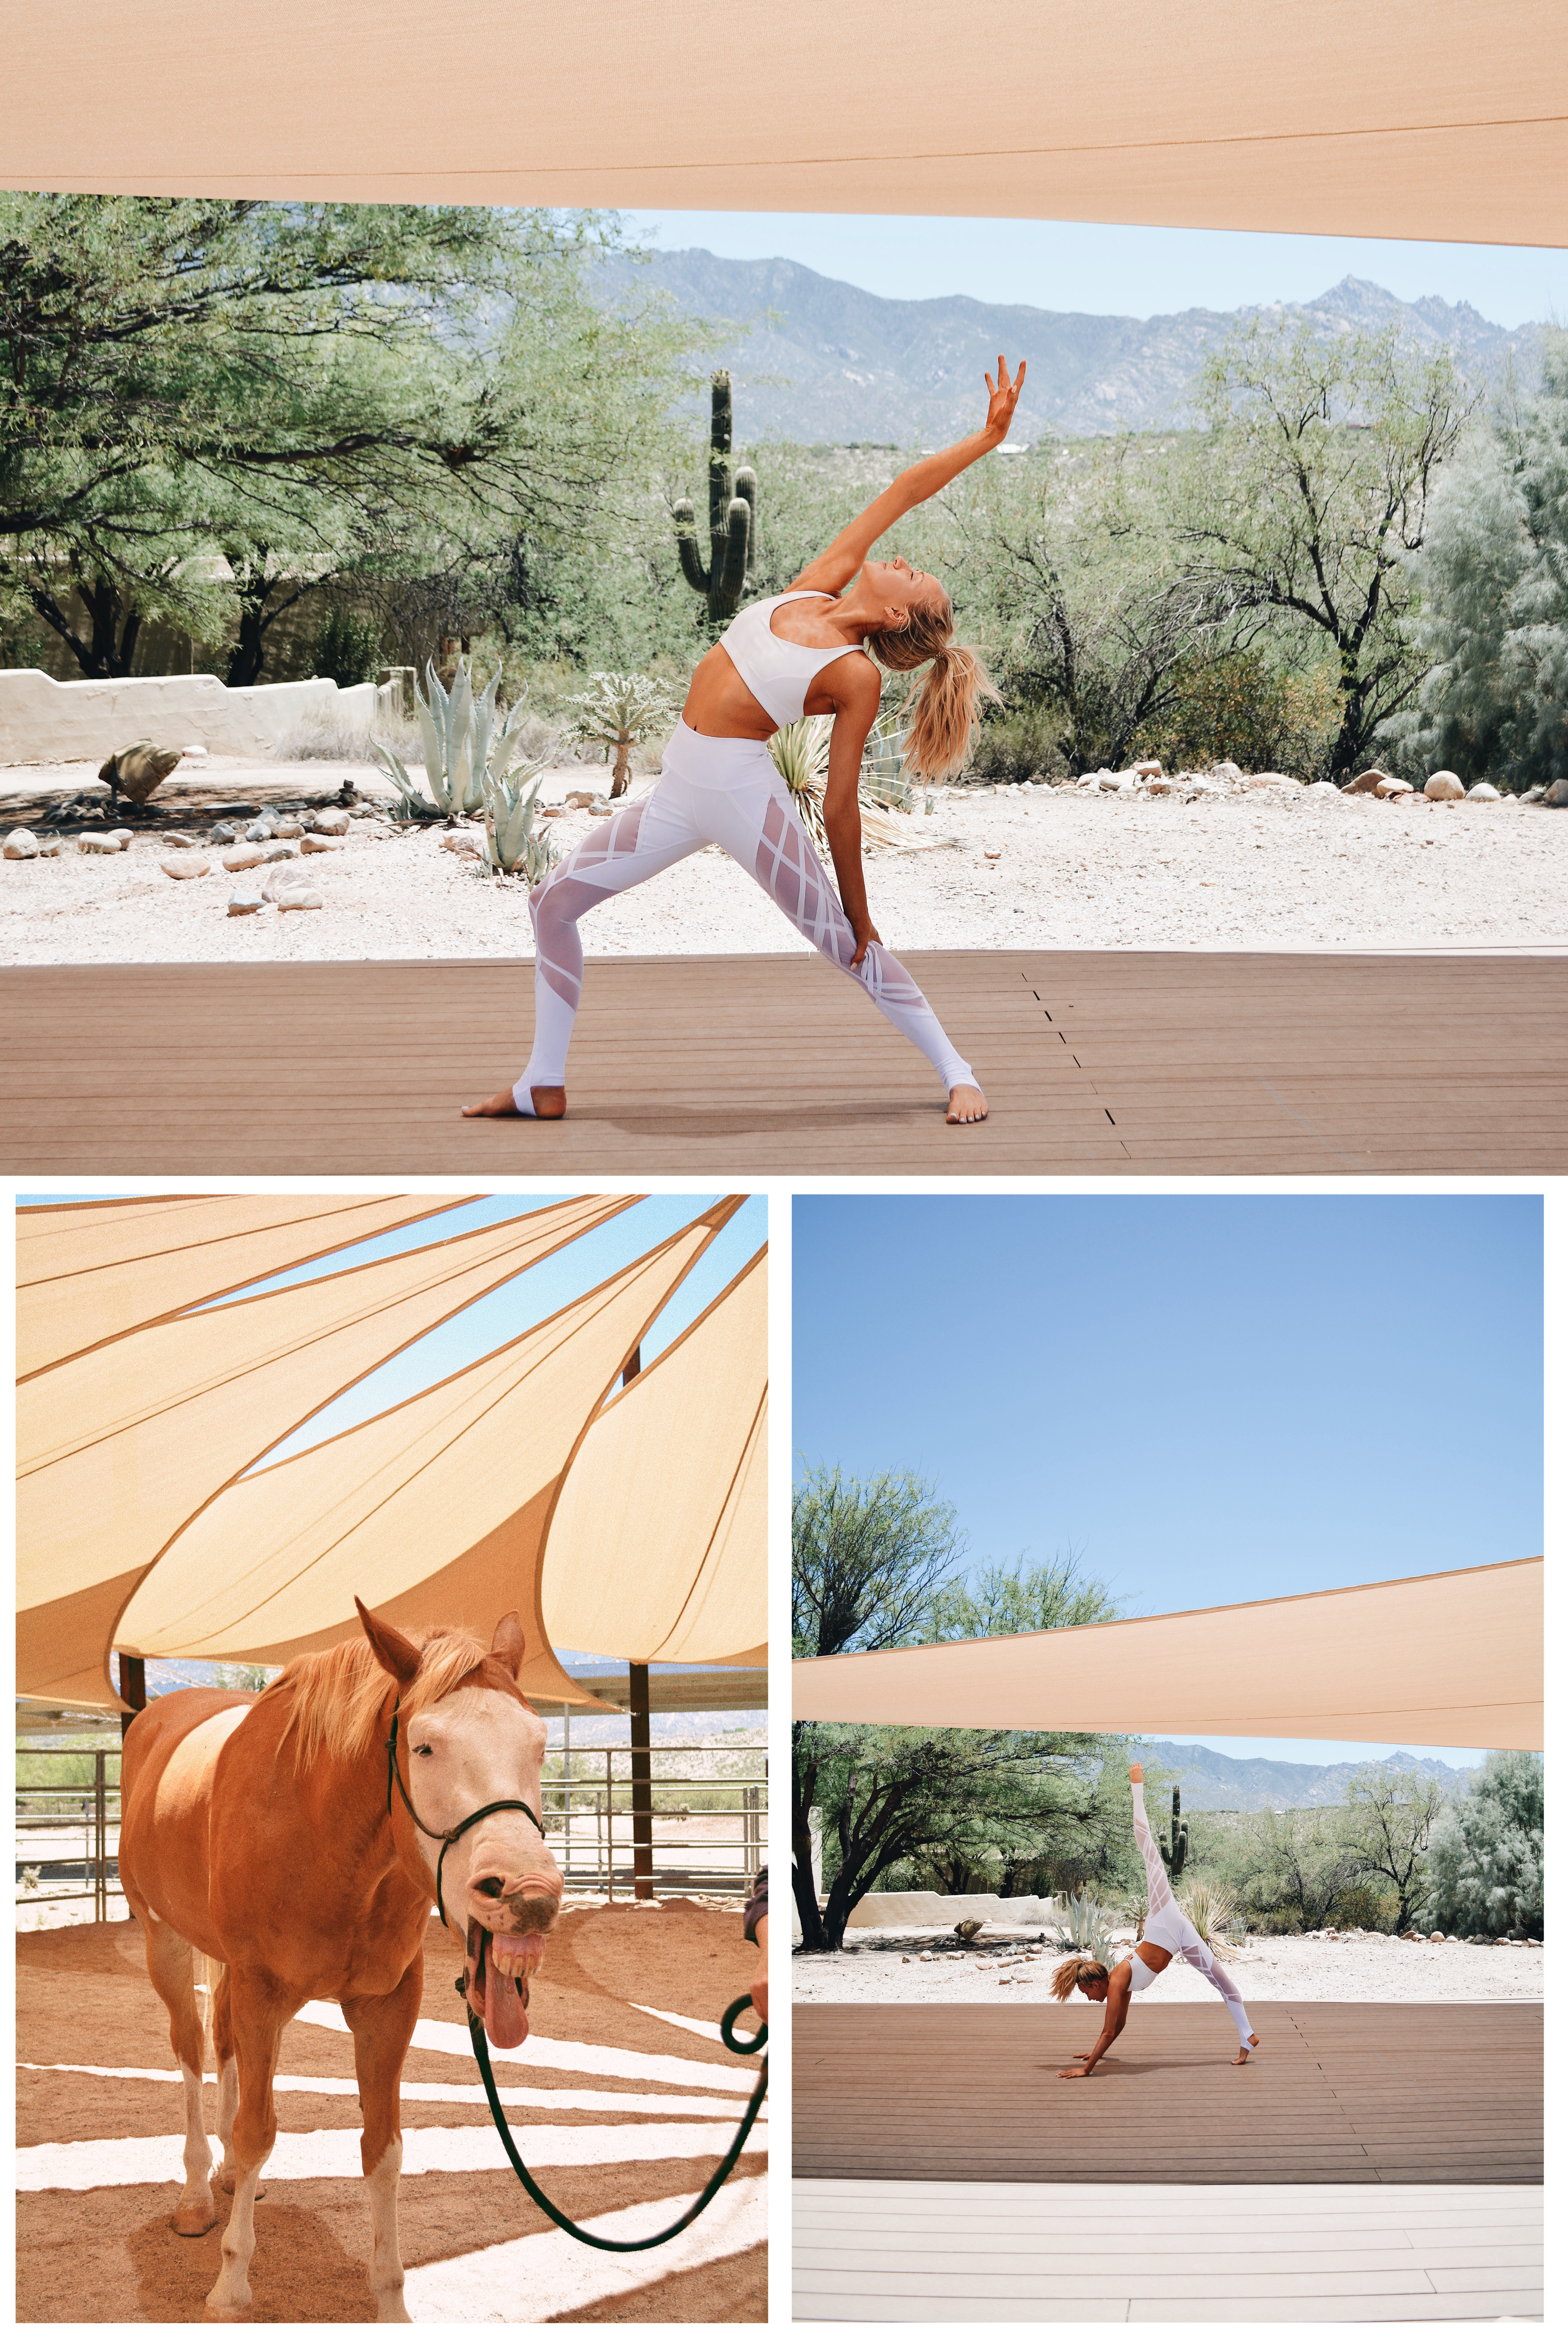 miraval_summer_travel_nastia_liukin_retreat_wishlist_arizona_tucson_spa_relax